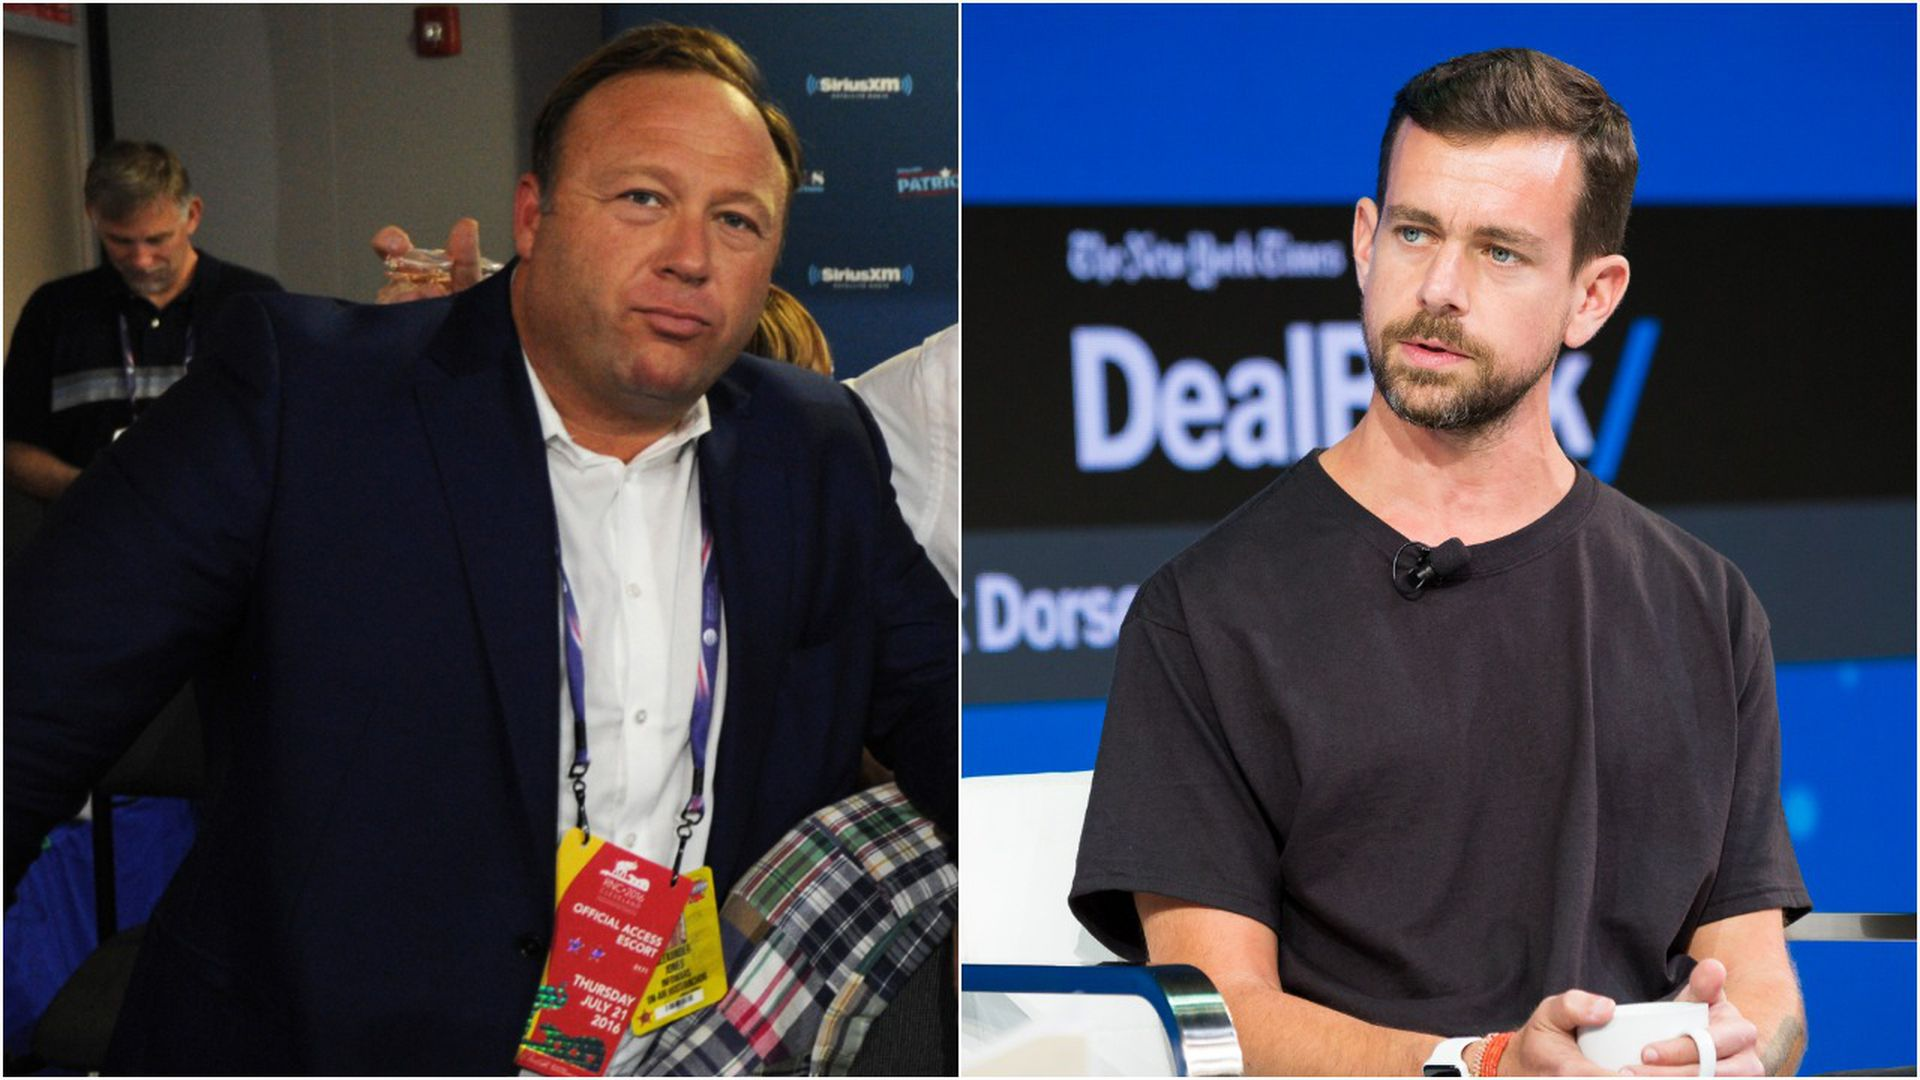 A split-screen image of Alex Jones and Jack Dorsey.